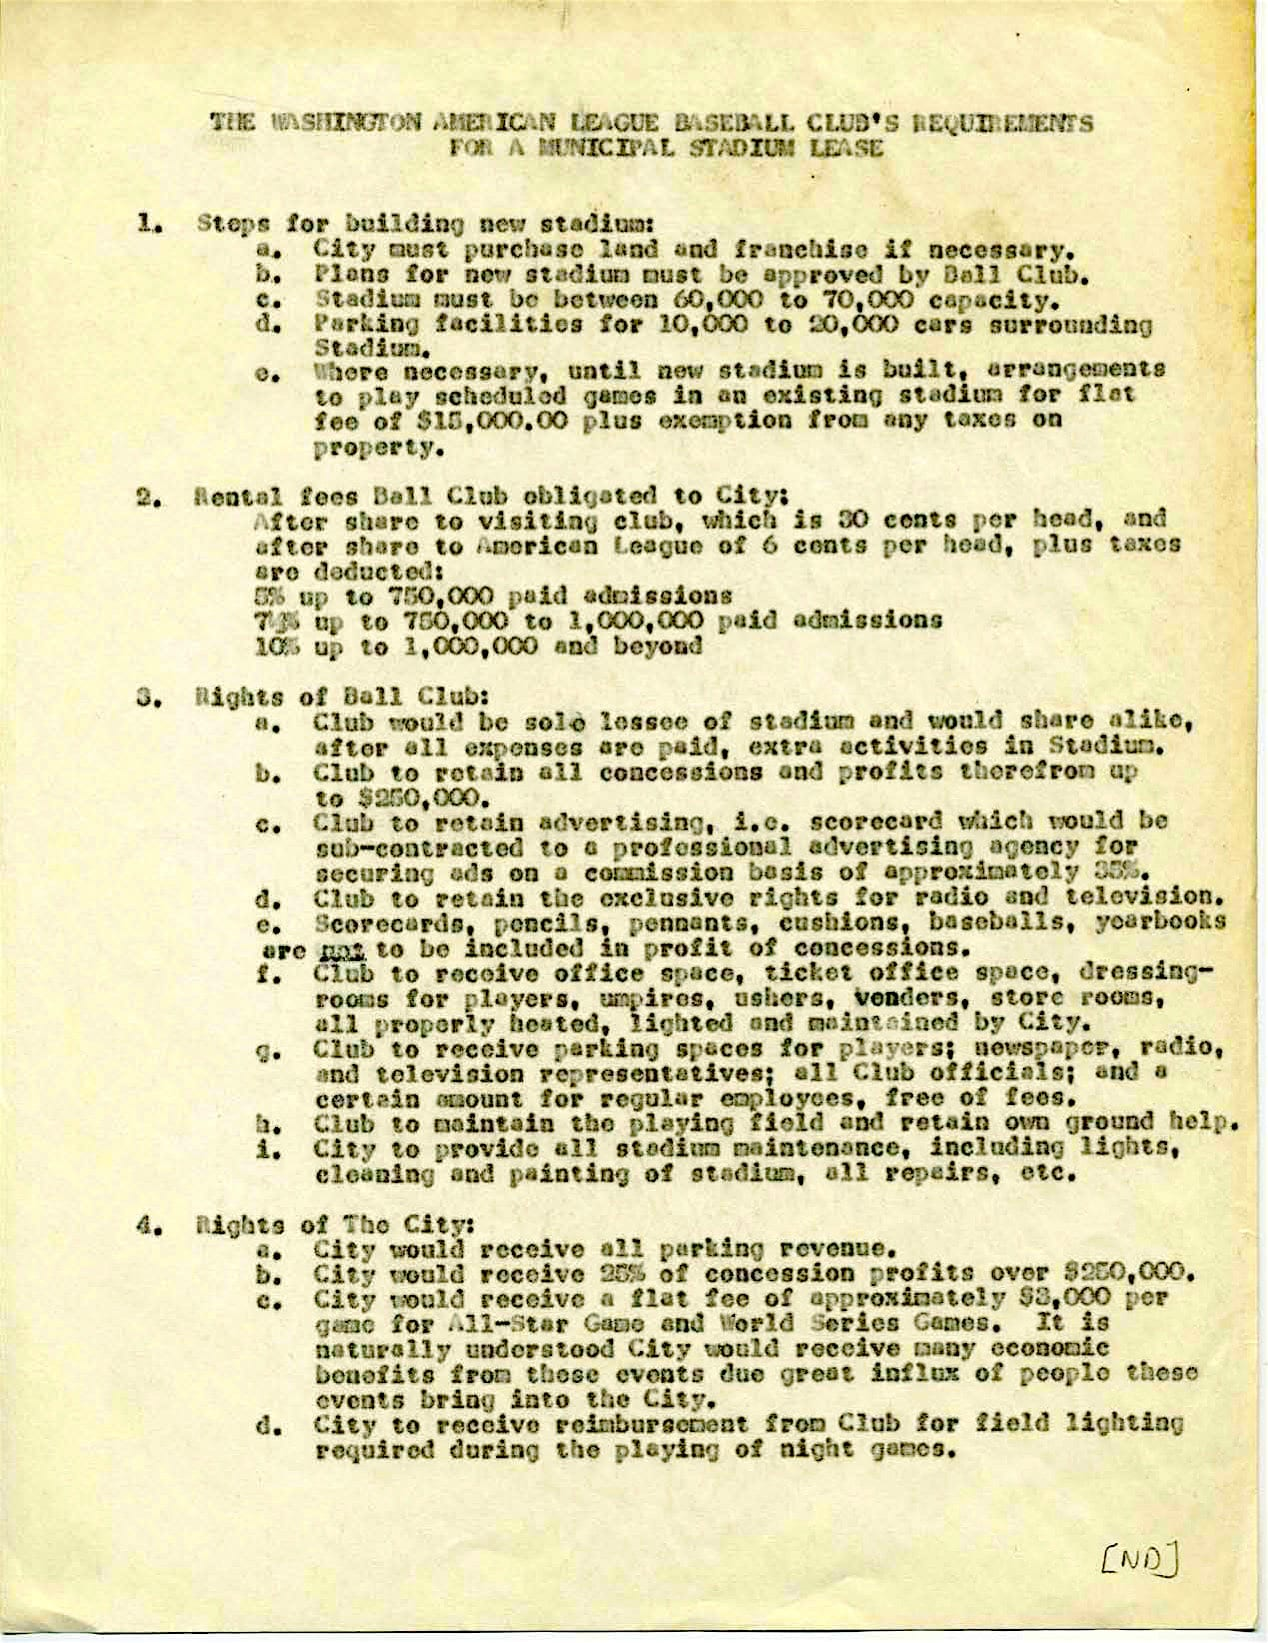 List of requirements for a municipal baseball stadium lease, including steps for building a stadium, the baseball club's rental obligations, the rights of the ball club, and the rights of the city.